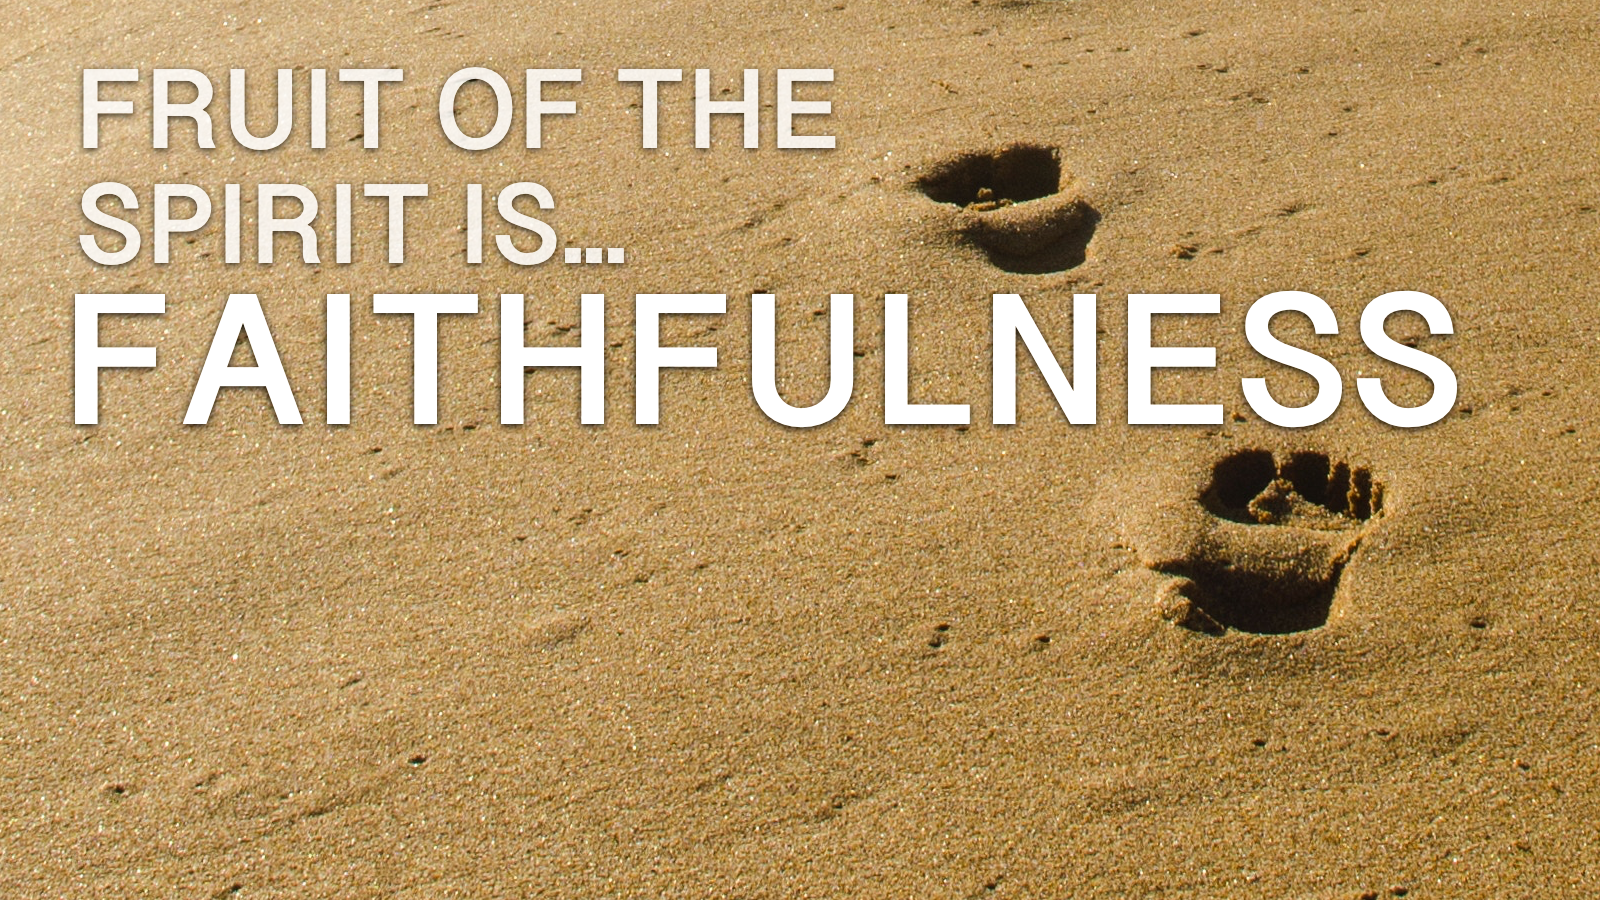 2019-02-25-The-Fruit-Of-The-Spirit-Is-Faithfulness.png